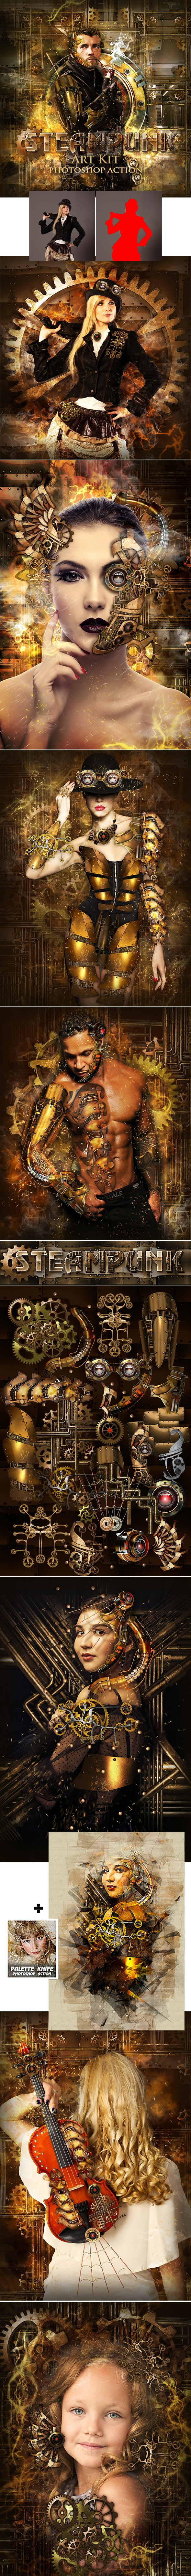 Steampunk Art Kit Photoshop Action - Photo Effects Actions